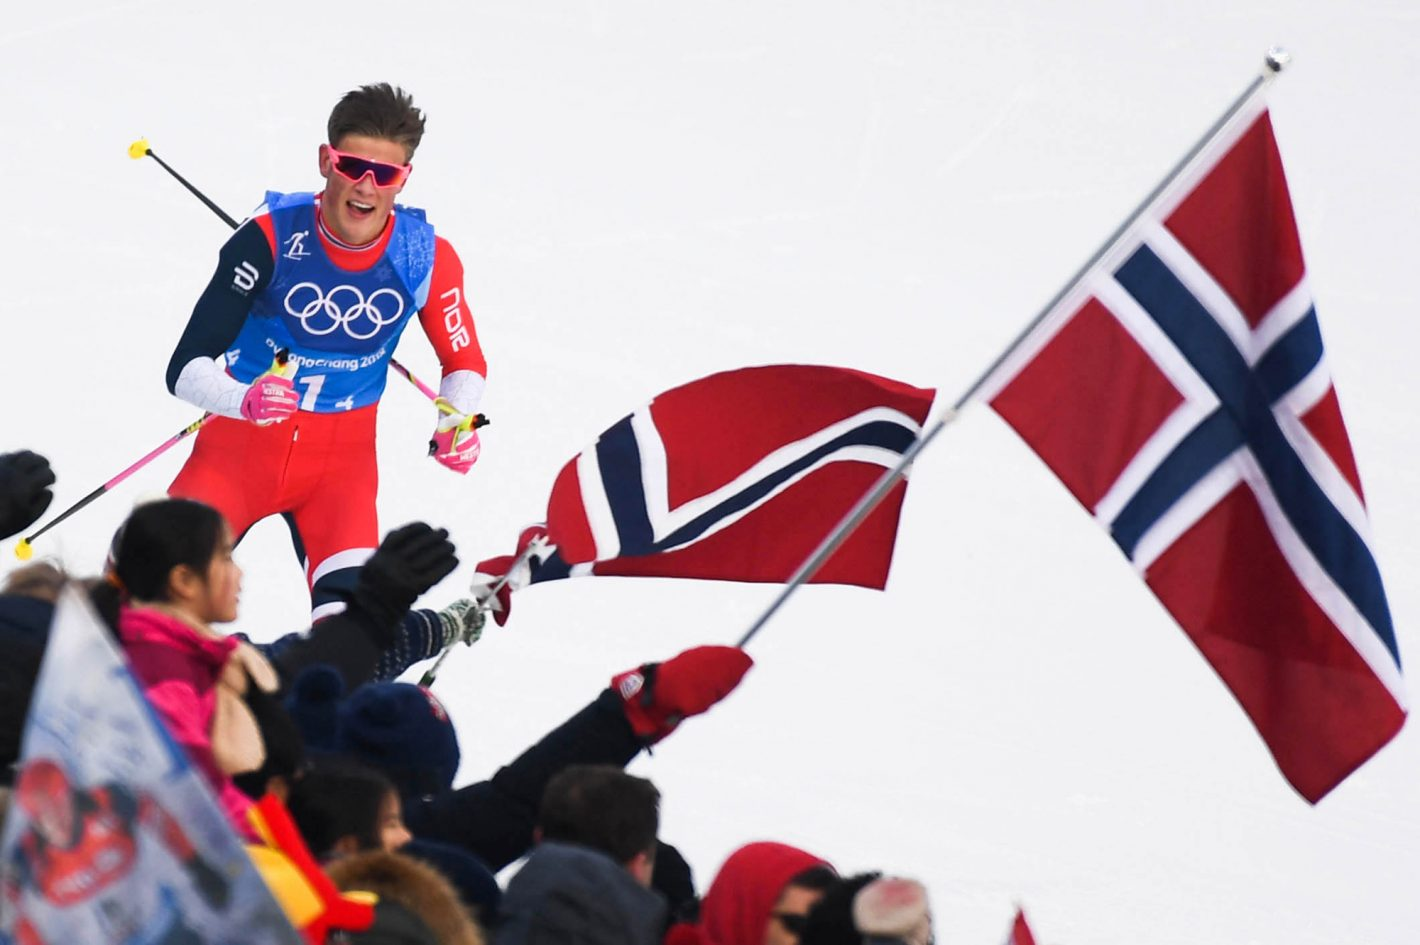 Feb 18, 2018; Pyeongchang, South Korea; Johannes Hoesflot Klaebo (NOR) reacts as he crosses the finish line in cross-country skiing mens 4x10km relay during the Pyeongchang 2018 Olympic Winter Games at Alpensia Cross-Country Centre. Mandatory Credit: James Lang-USA TODAY Sports Model: NIKON D5 Serial #: 3006880 Firmware: Adobe Photoshop CC 2017 (Macintosh) Frame #: 9267 Lens (mm): 500 ISO: 450 Aperture: 5.6 Shutter: 1/1000 Exp. Comp.: +0.3